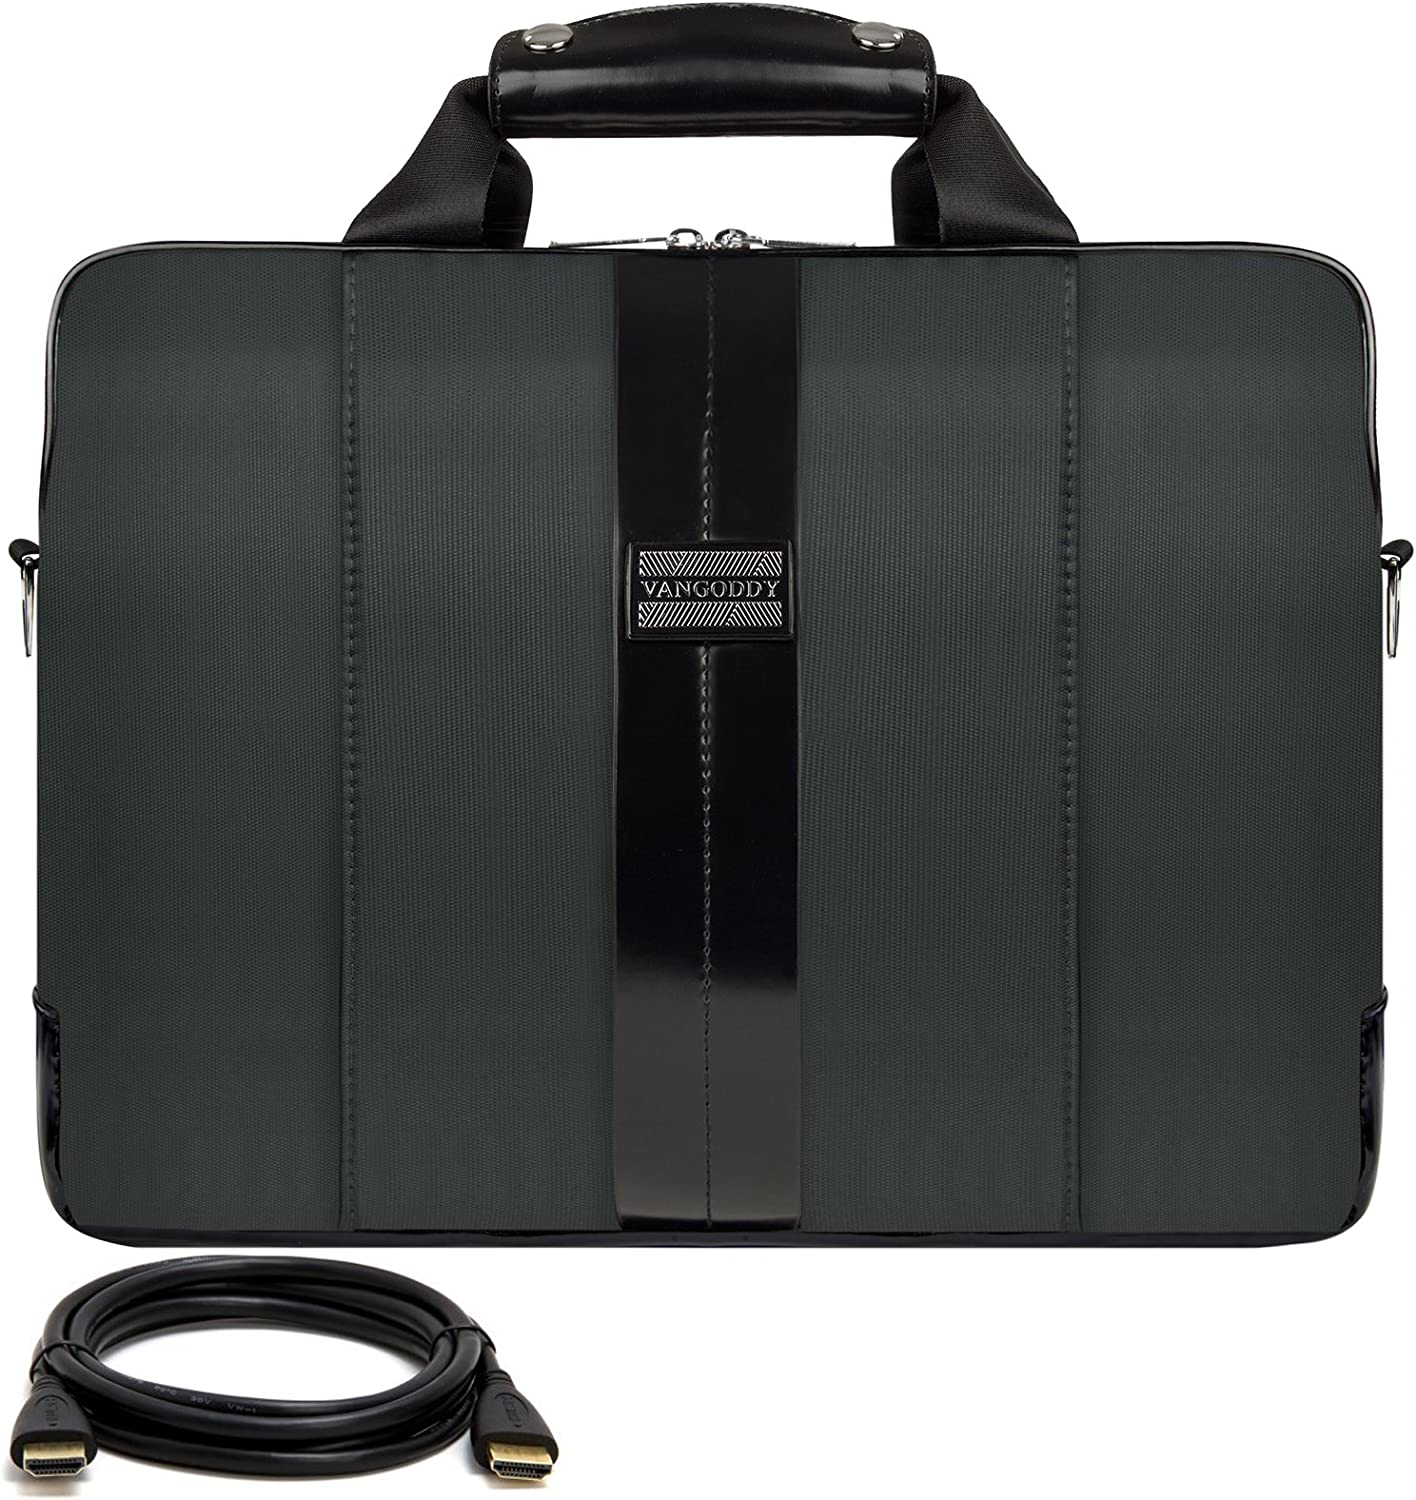 12FT HDMI Cable VanGoddy Modern Gray Messenger Bag for Apple MacBook Pro 15-inch